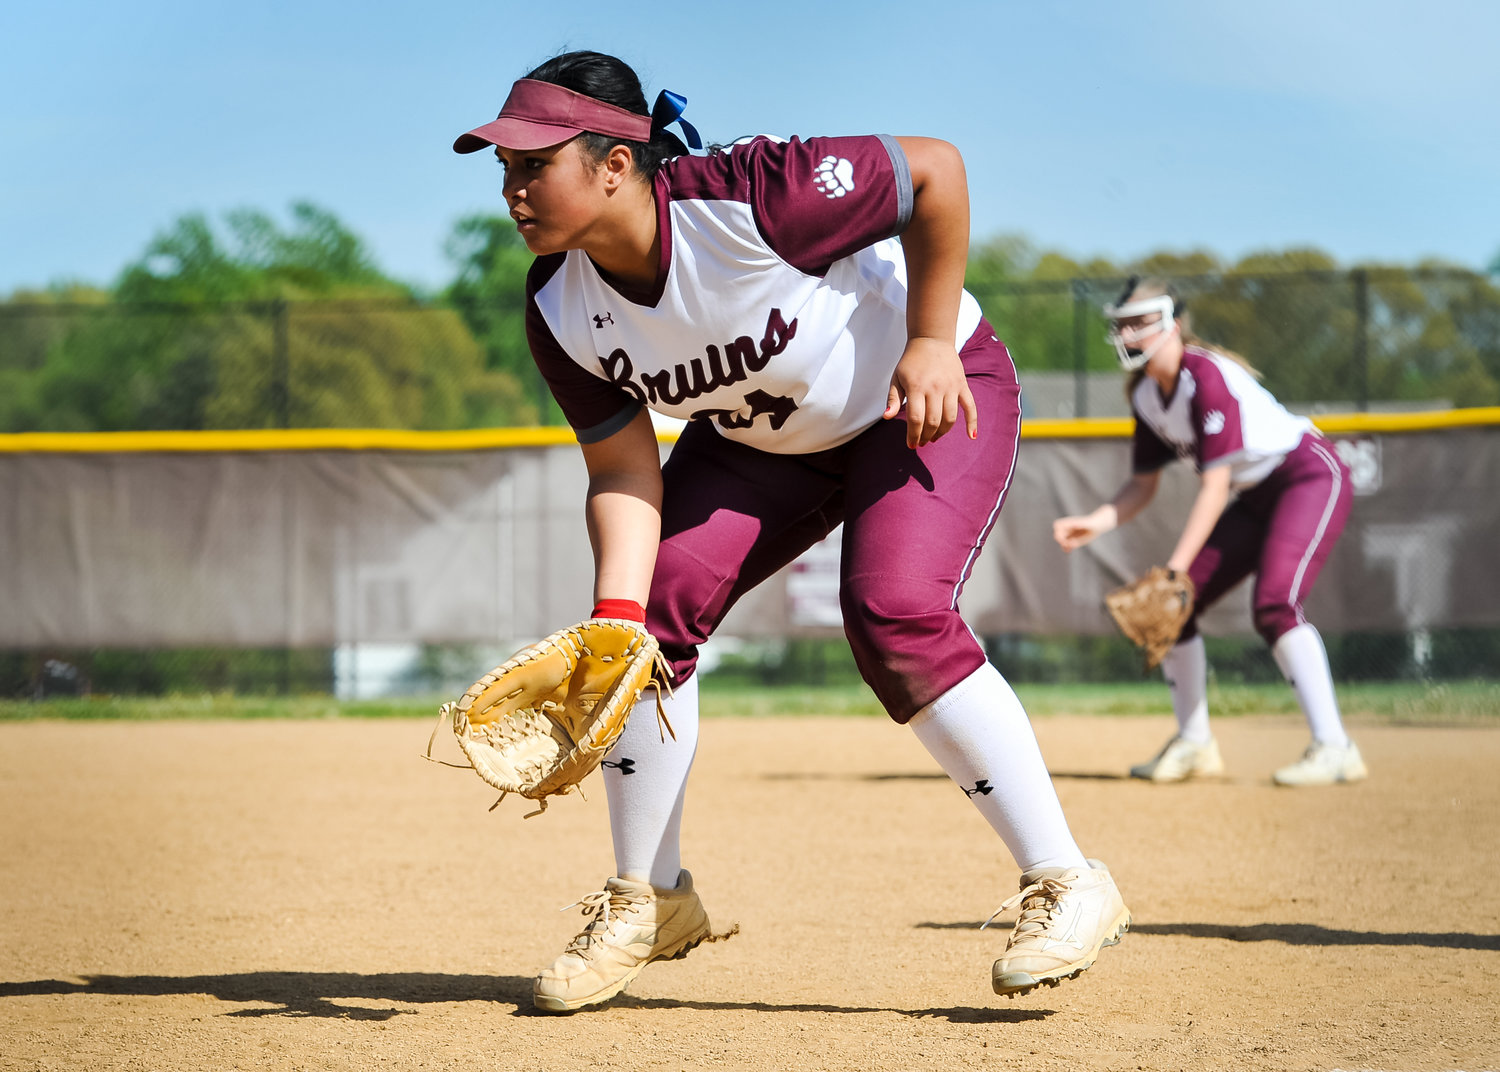 Broadneck senior Elizabeth Shafer is a four-year varsity softball player for the Bruins who is committed to play at Dayton next year.